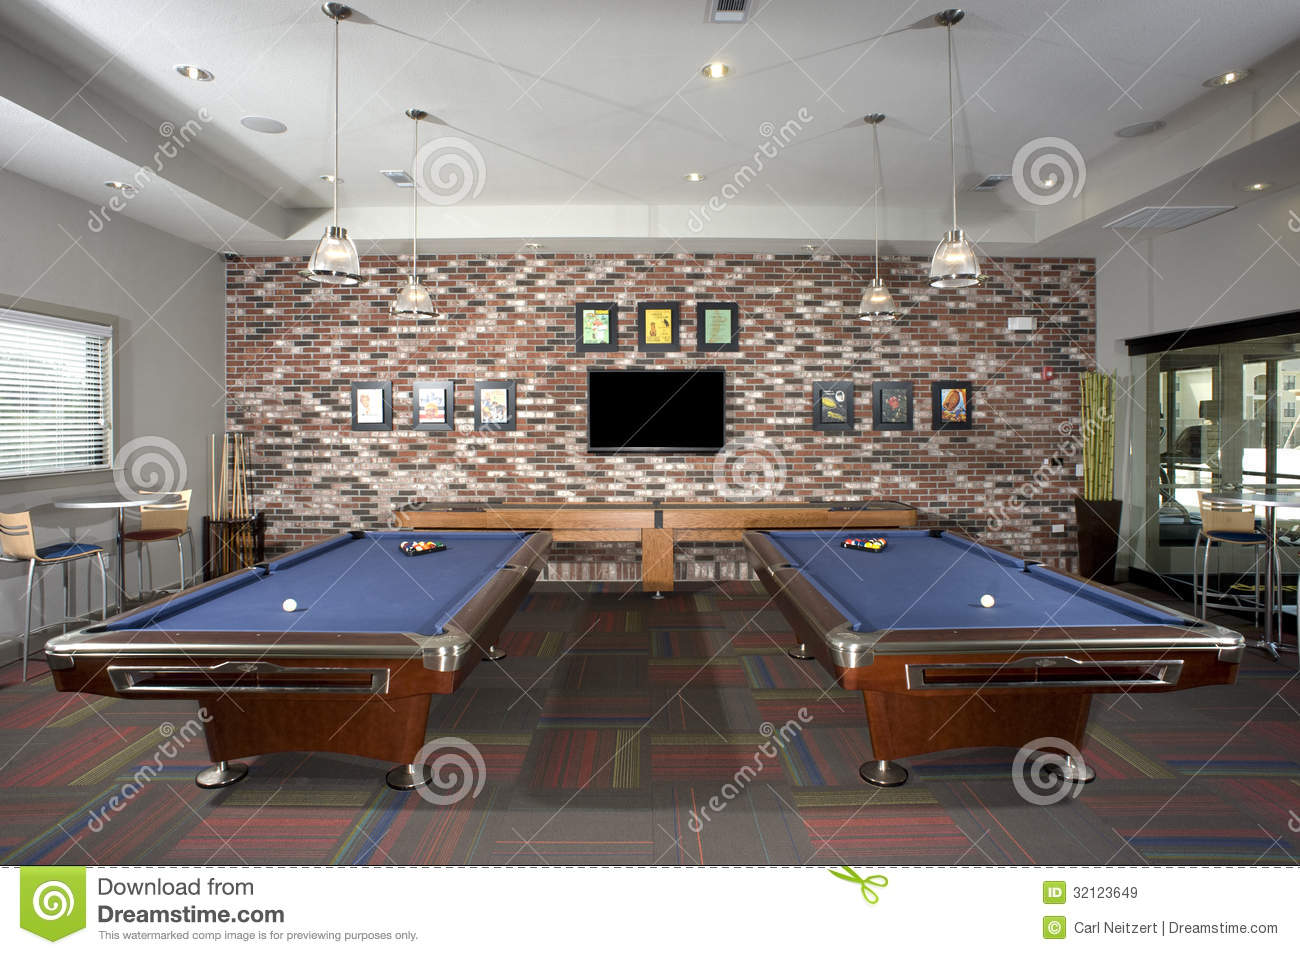 Small billiards room royalty free stock images image for Small pool table room ideas